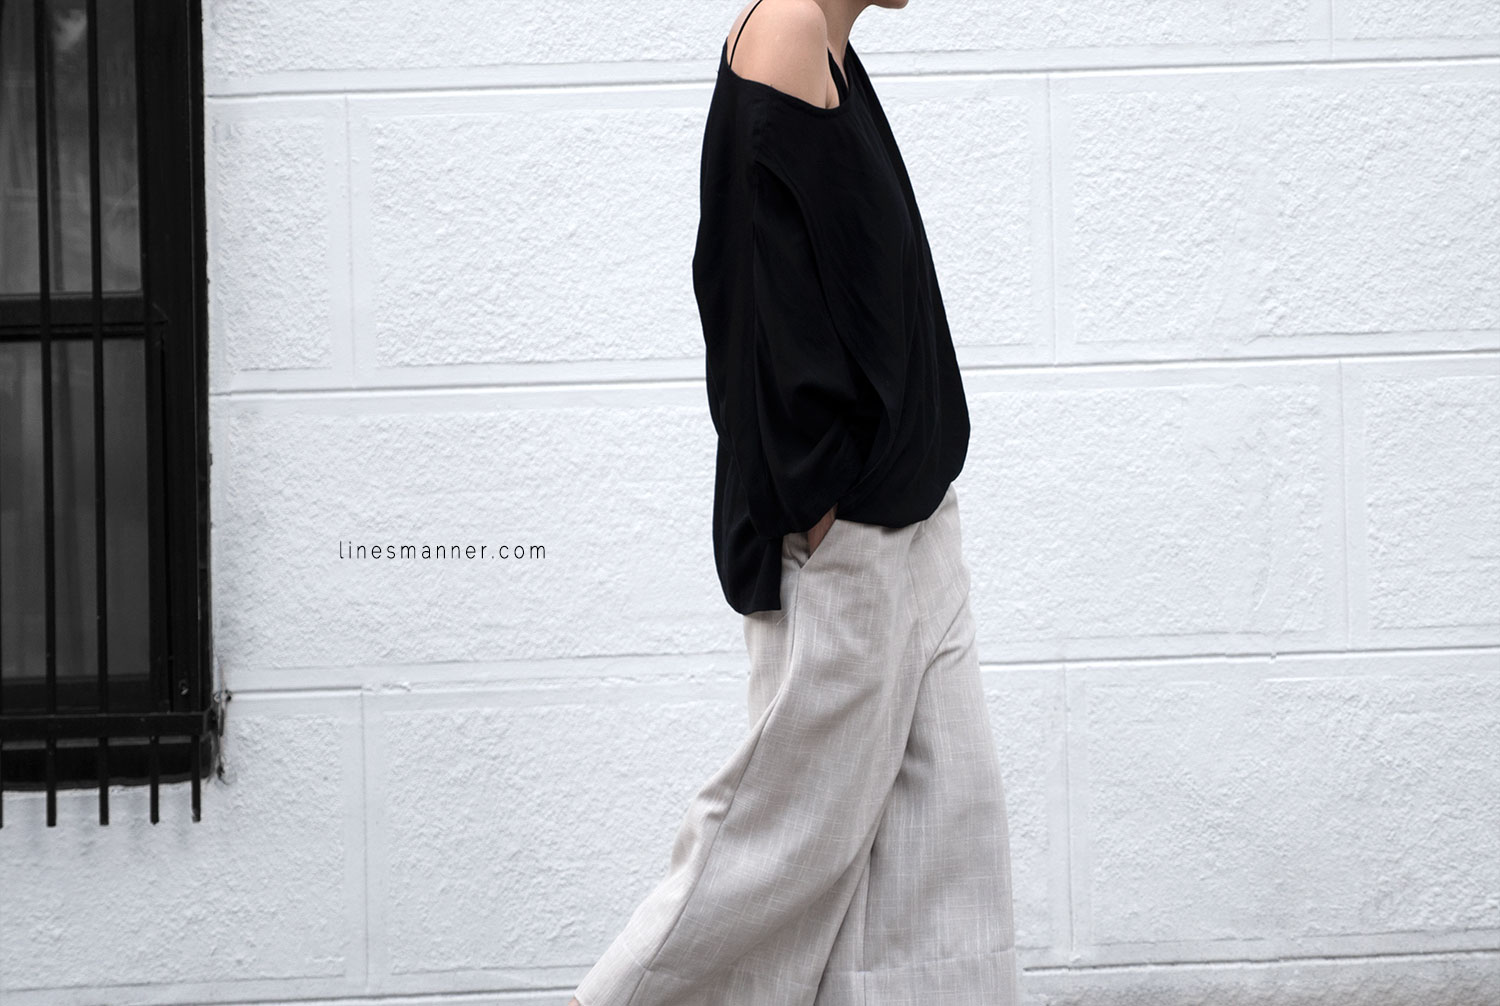 Lines-Manner-Modern-Minimal-Effortless-Casual-Wide_Leg_Culotte-Coidlyn_Wight-Draped-Coton-Linen-Sustainable-Slow_Fashion-Neutrals-Structure-Volume-Fluid-Simplicity-Details-6